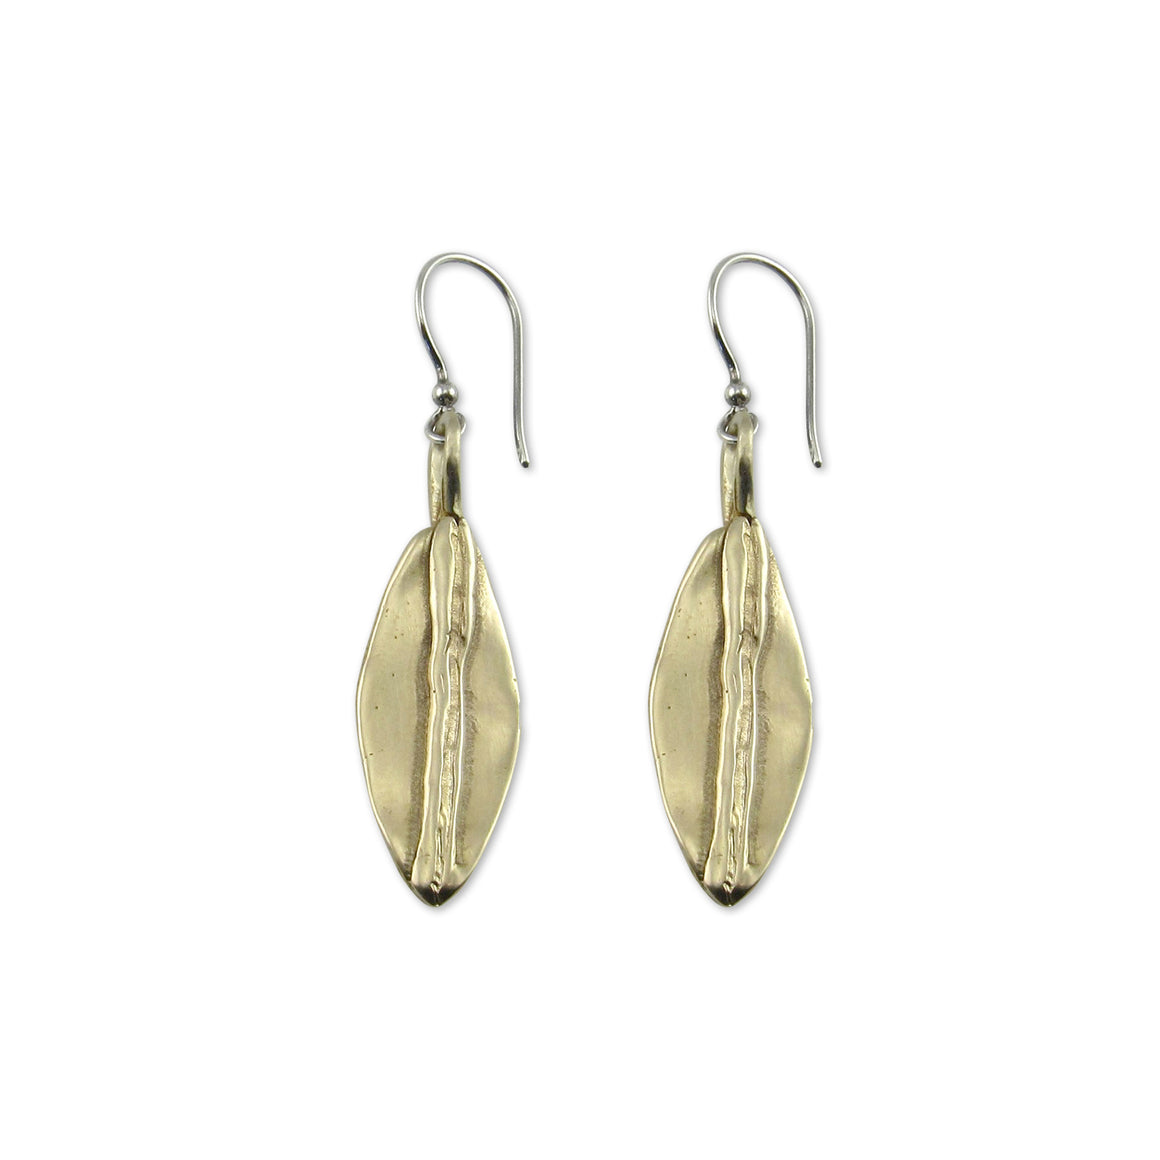 Soraya Earrings by Kristen Mara in sterling silver and bronze